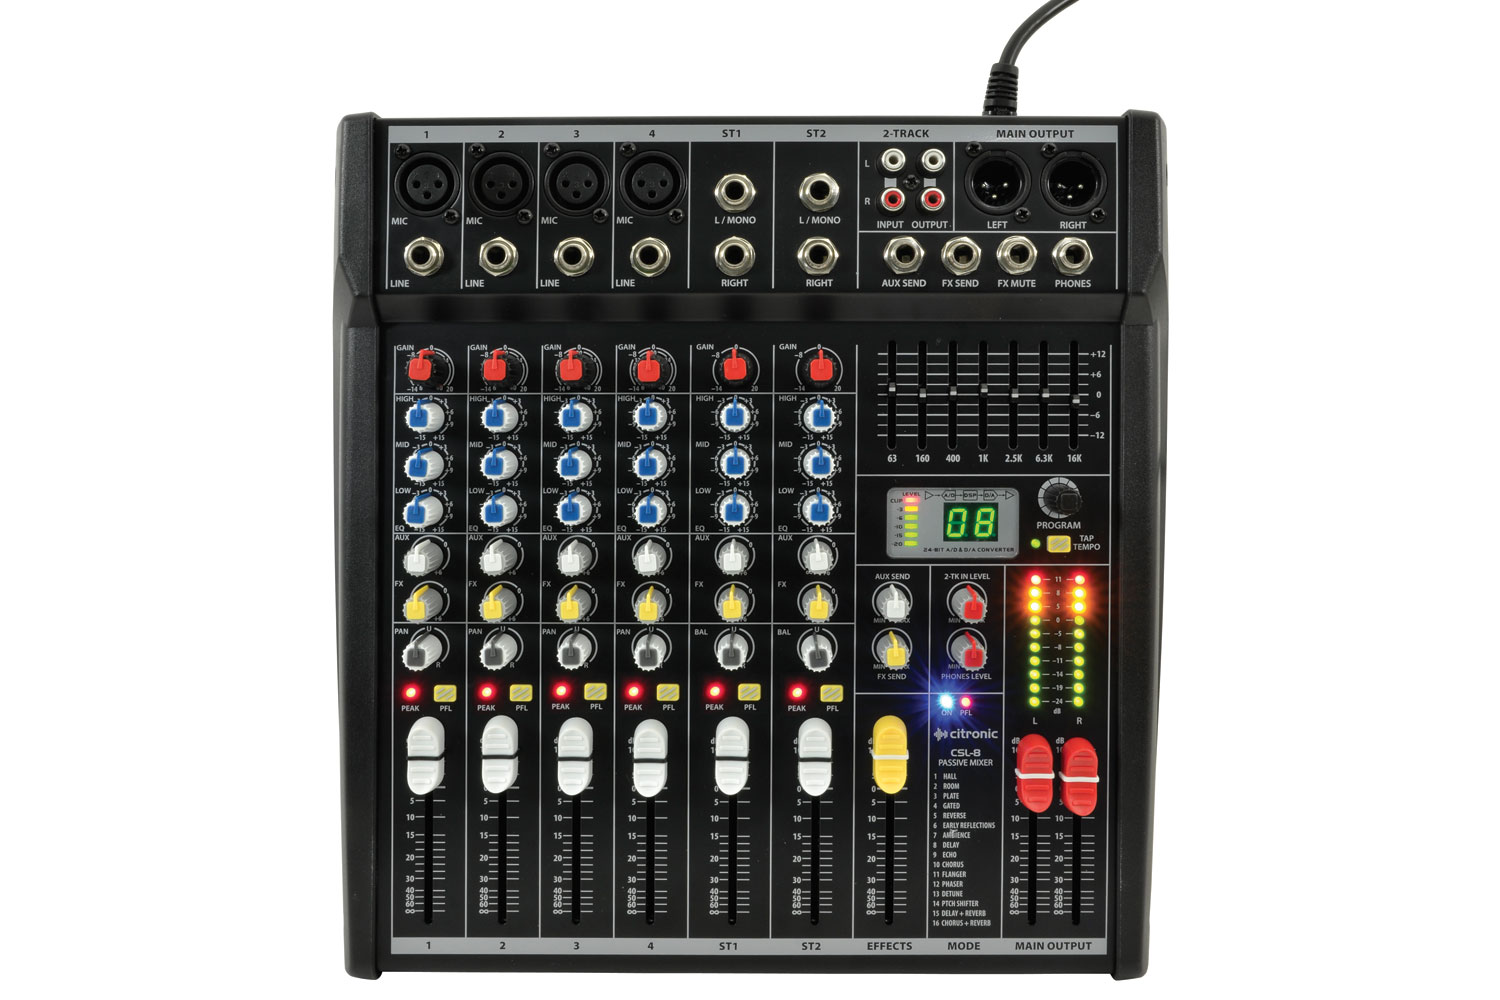 CSL-10 mixing console 10 input